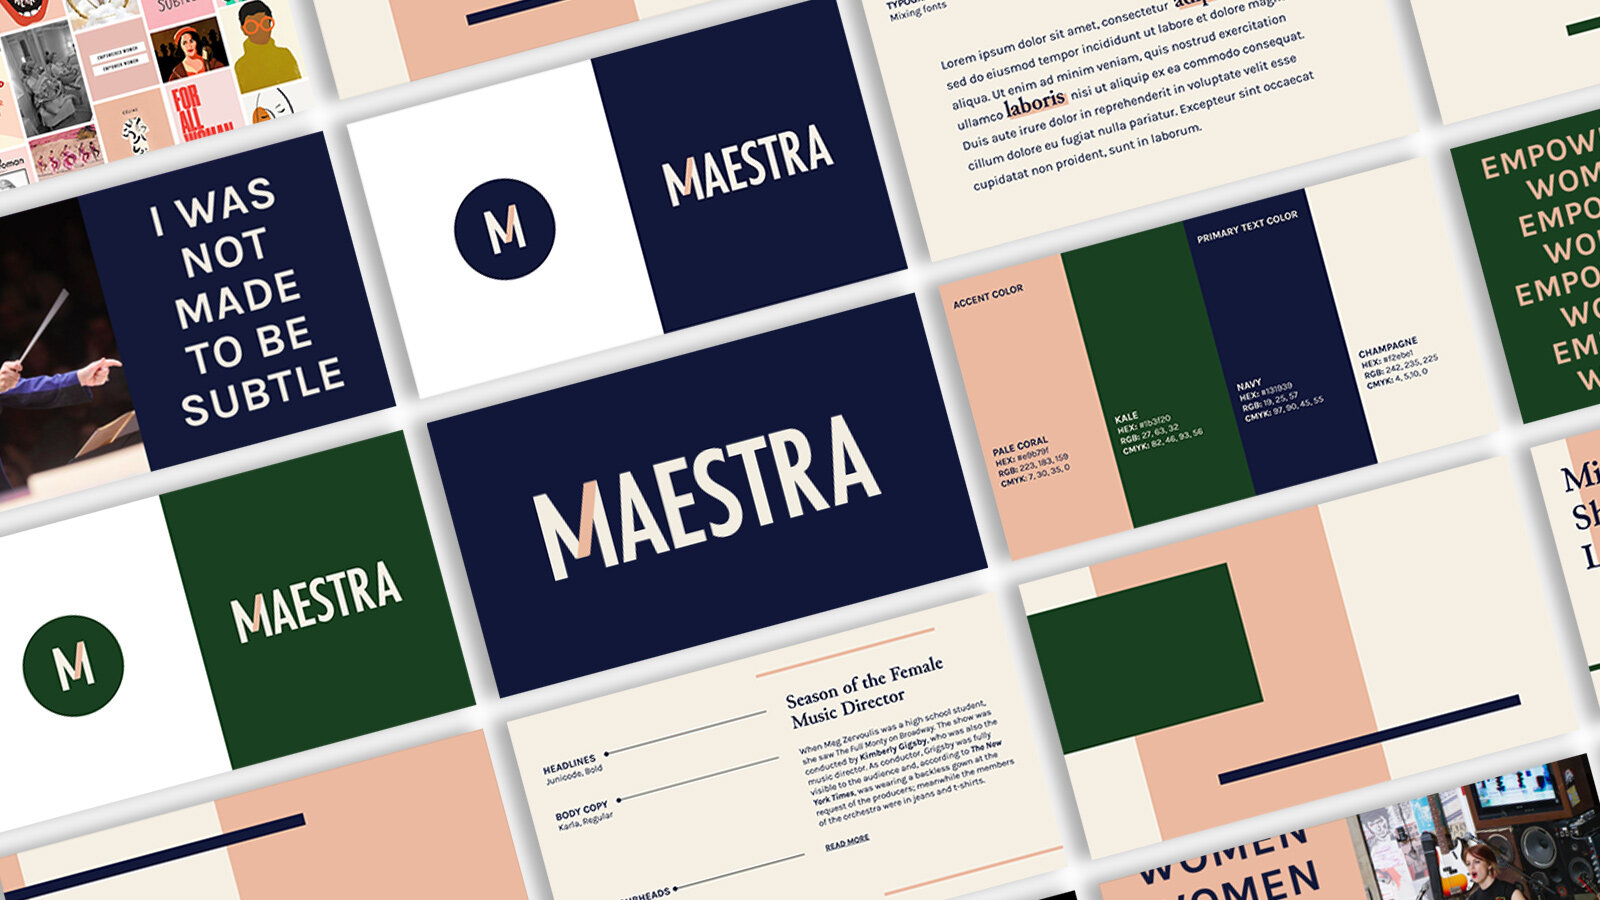 Maestra branding images tilted at a 45 degree angle.